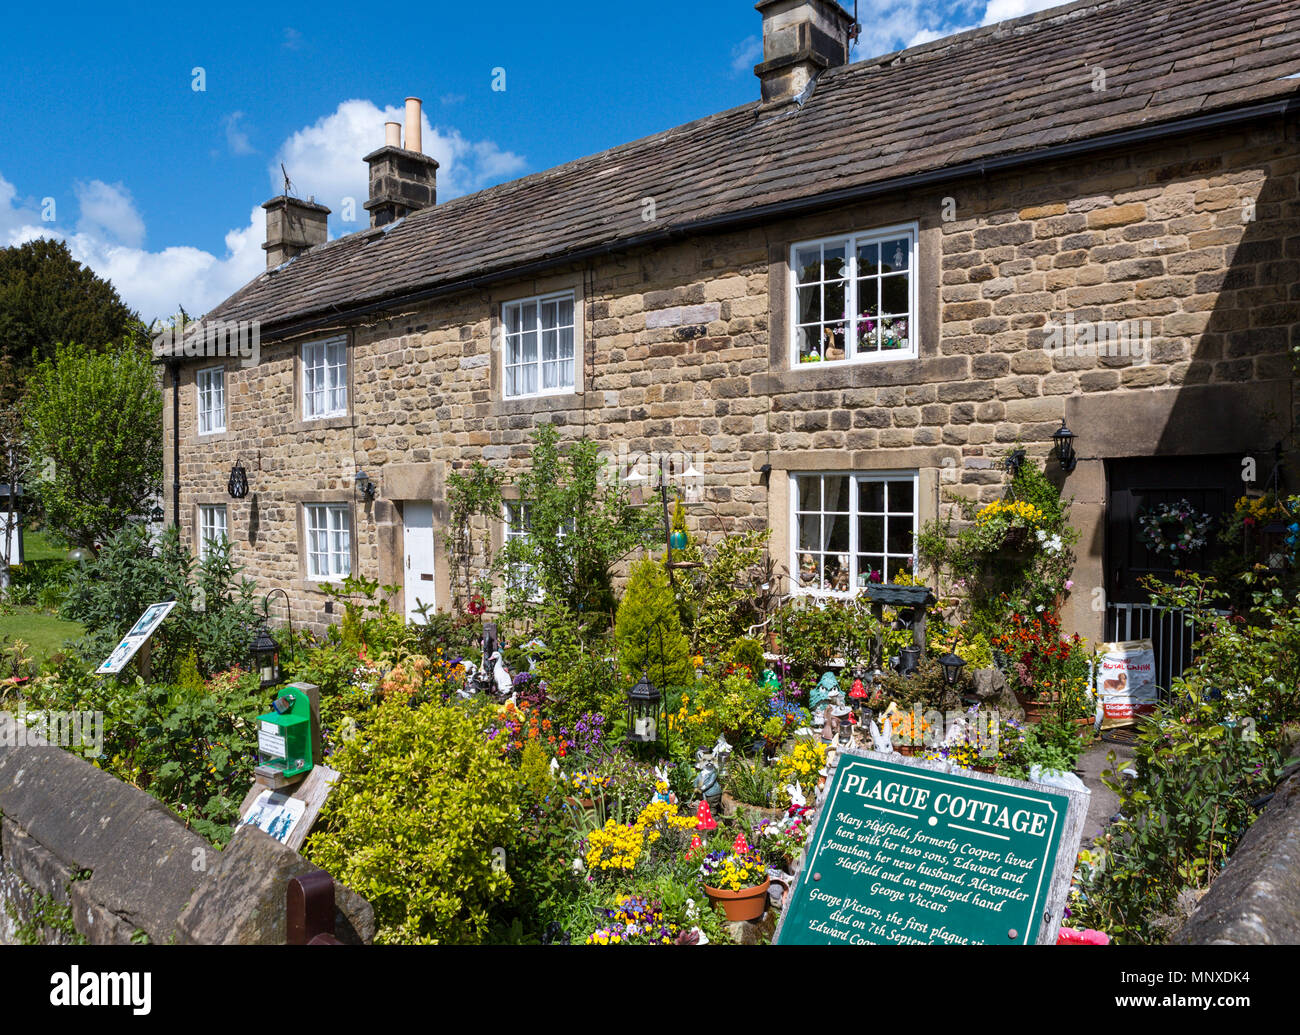 Plague Cottages in Eyam, Peak District, Derbyshire, England, UK. Eyam is sometimes referred to as the Plague Village. - Stock Image